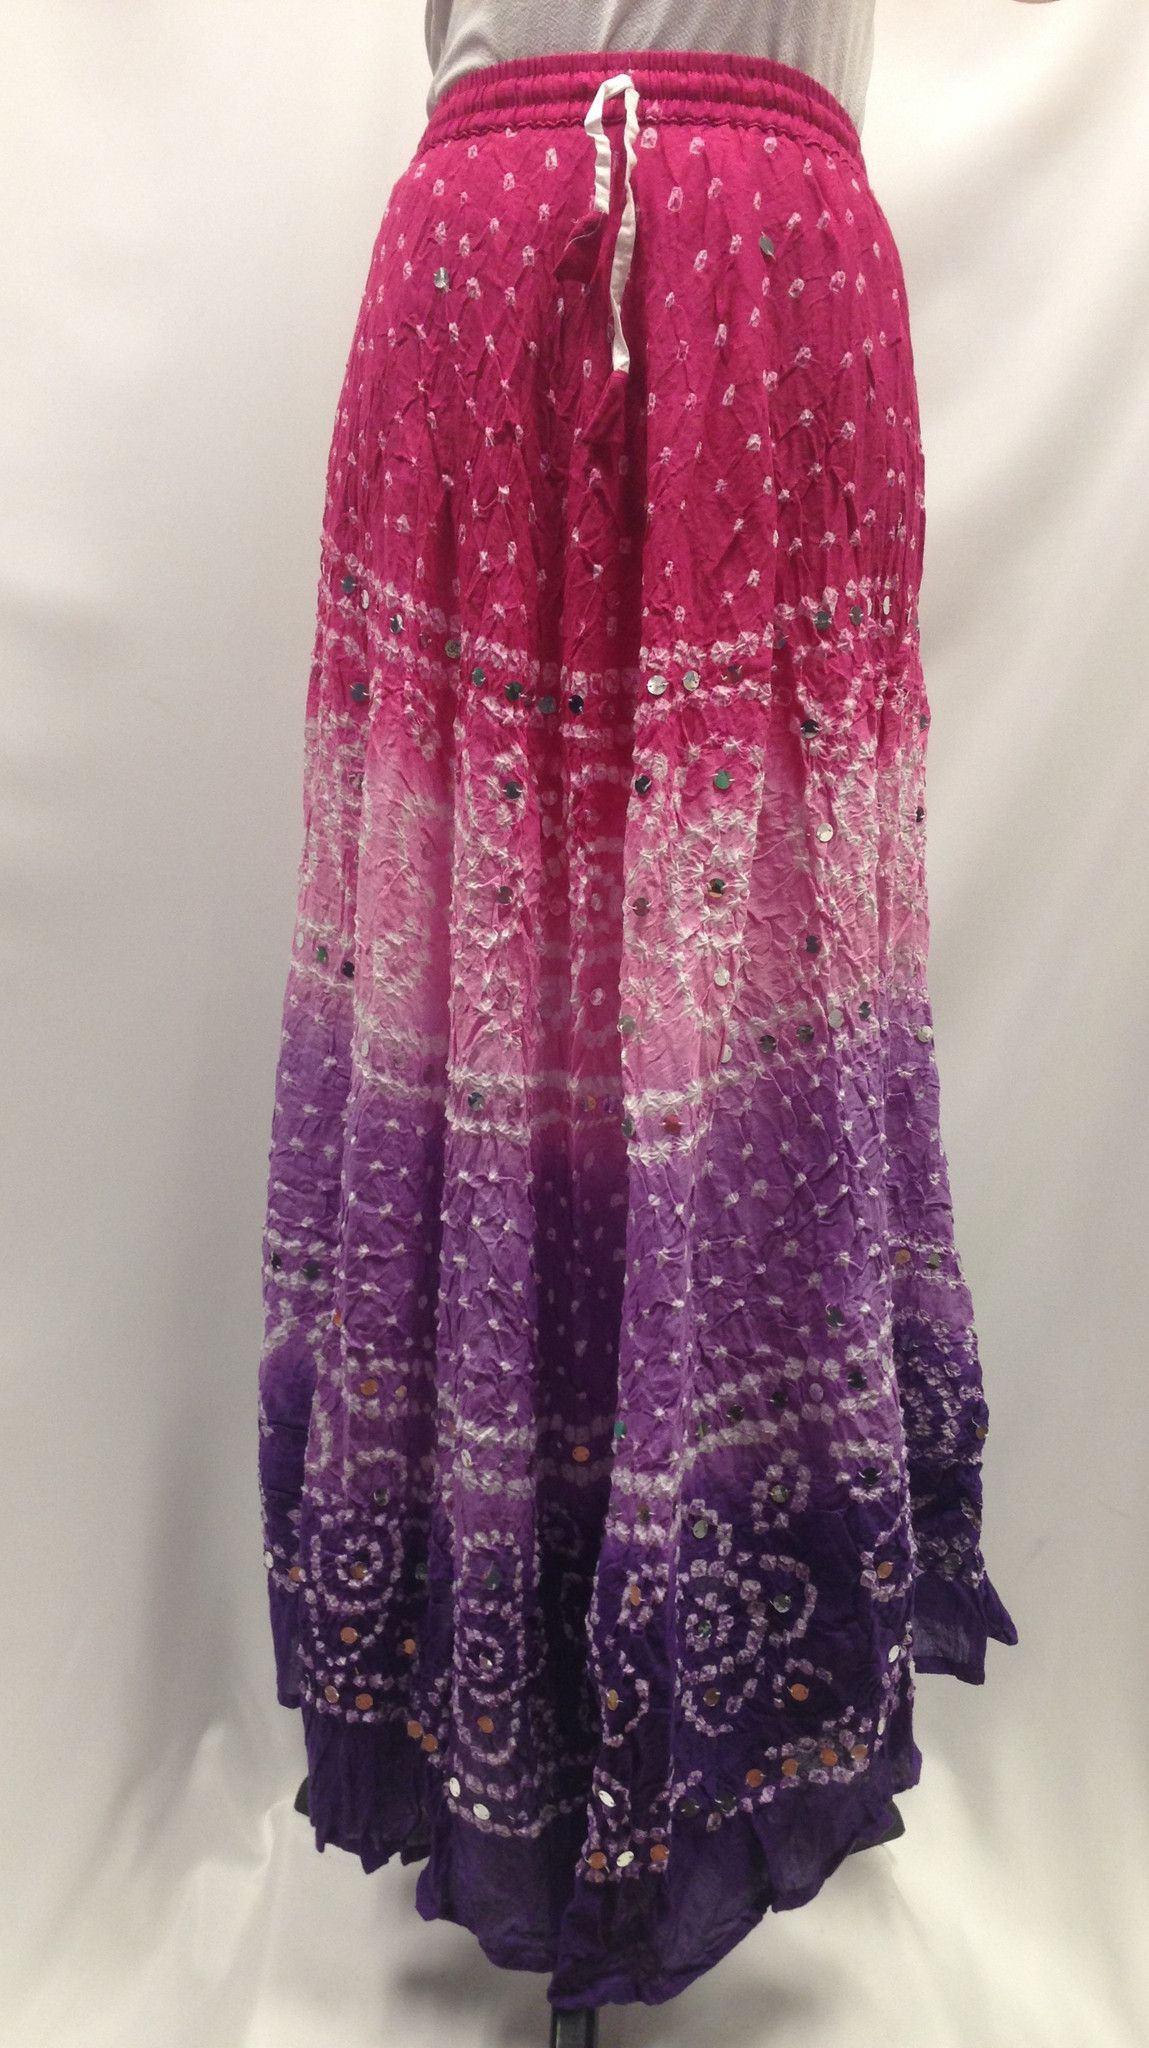 8122ba17a Bandhani Tie-Dye Skirt from Jaipur with Large Sequins Pink-Purple ...